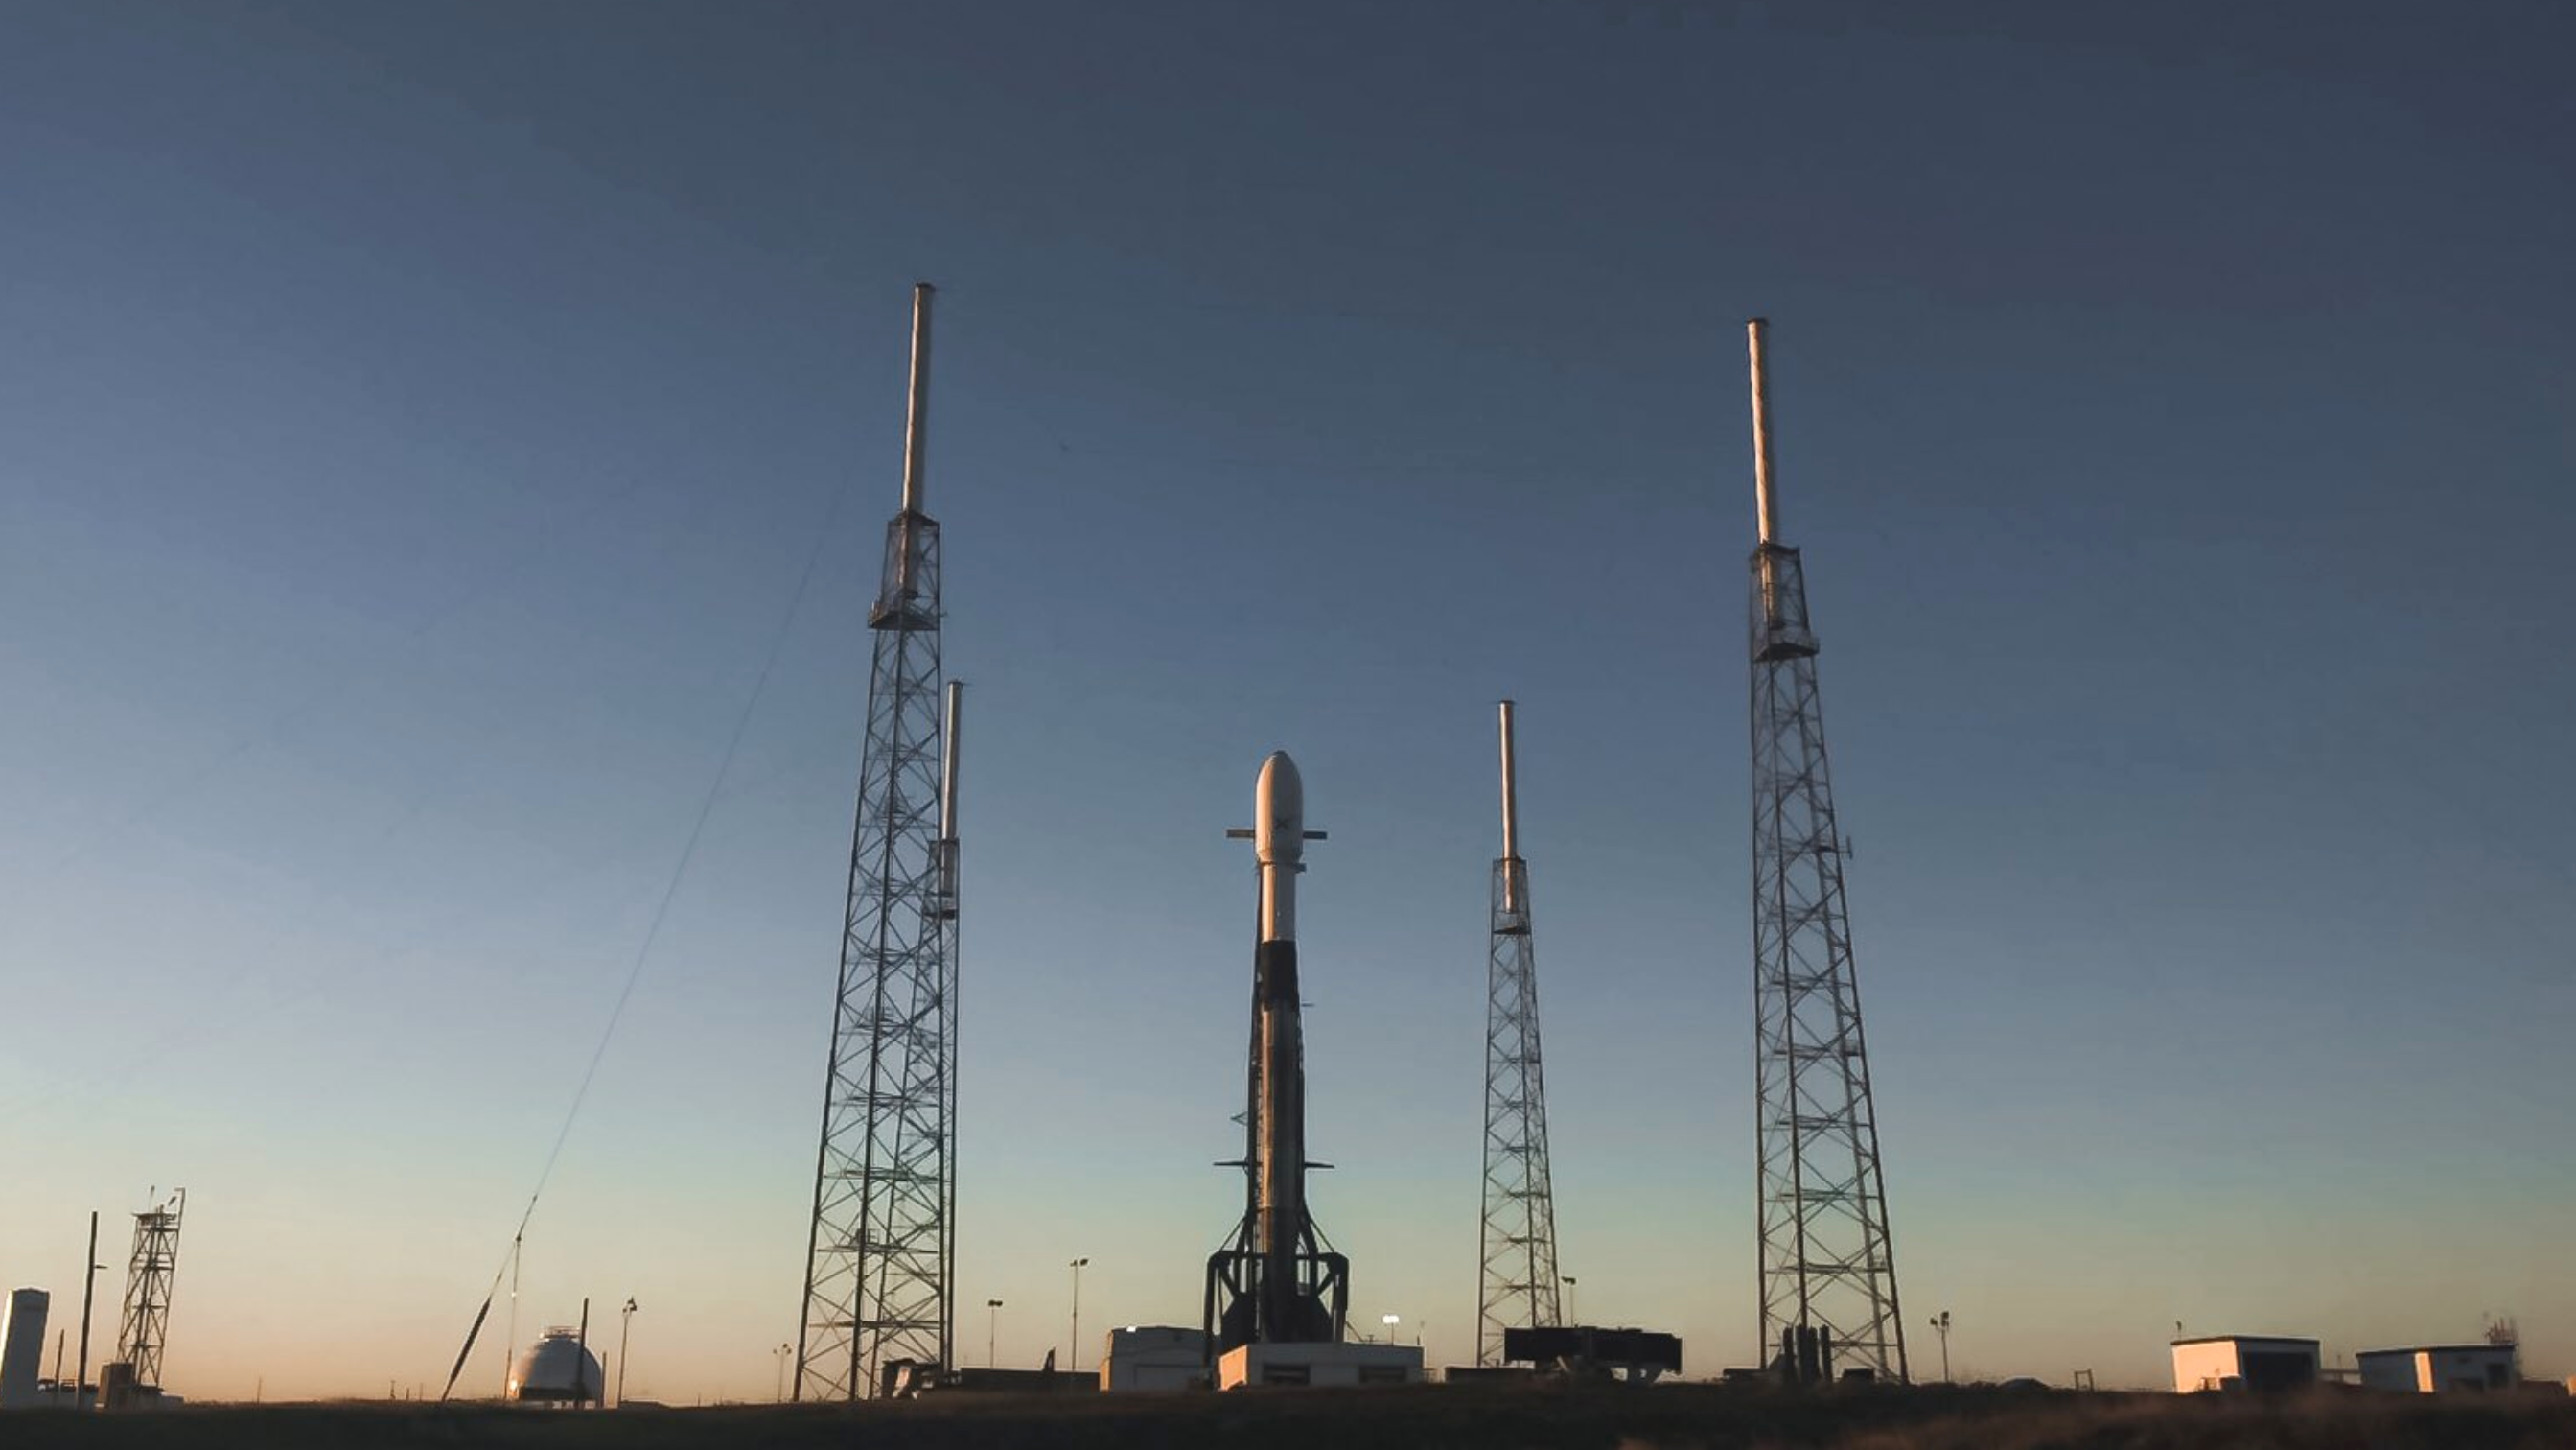 A SpaceX Falcon 9 rocket stands on the pad at Cape